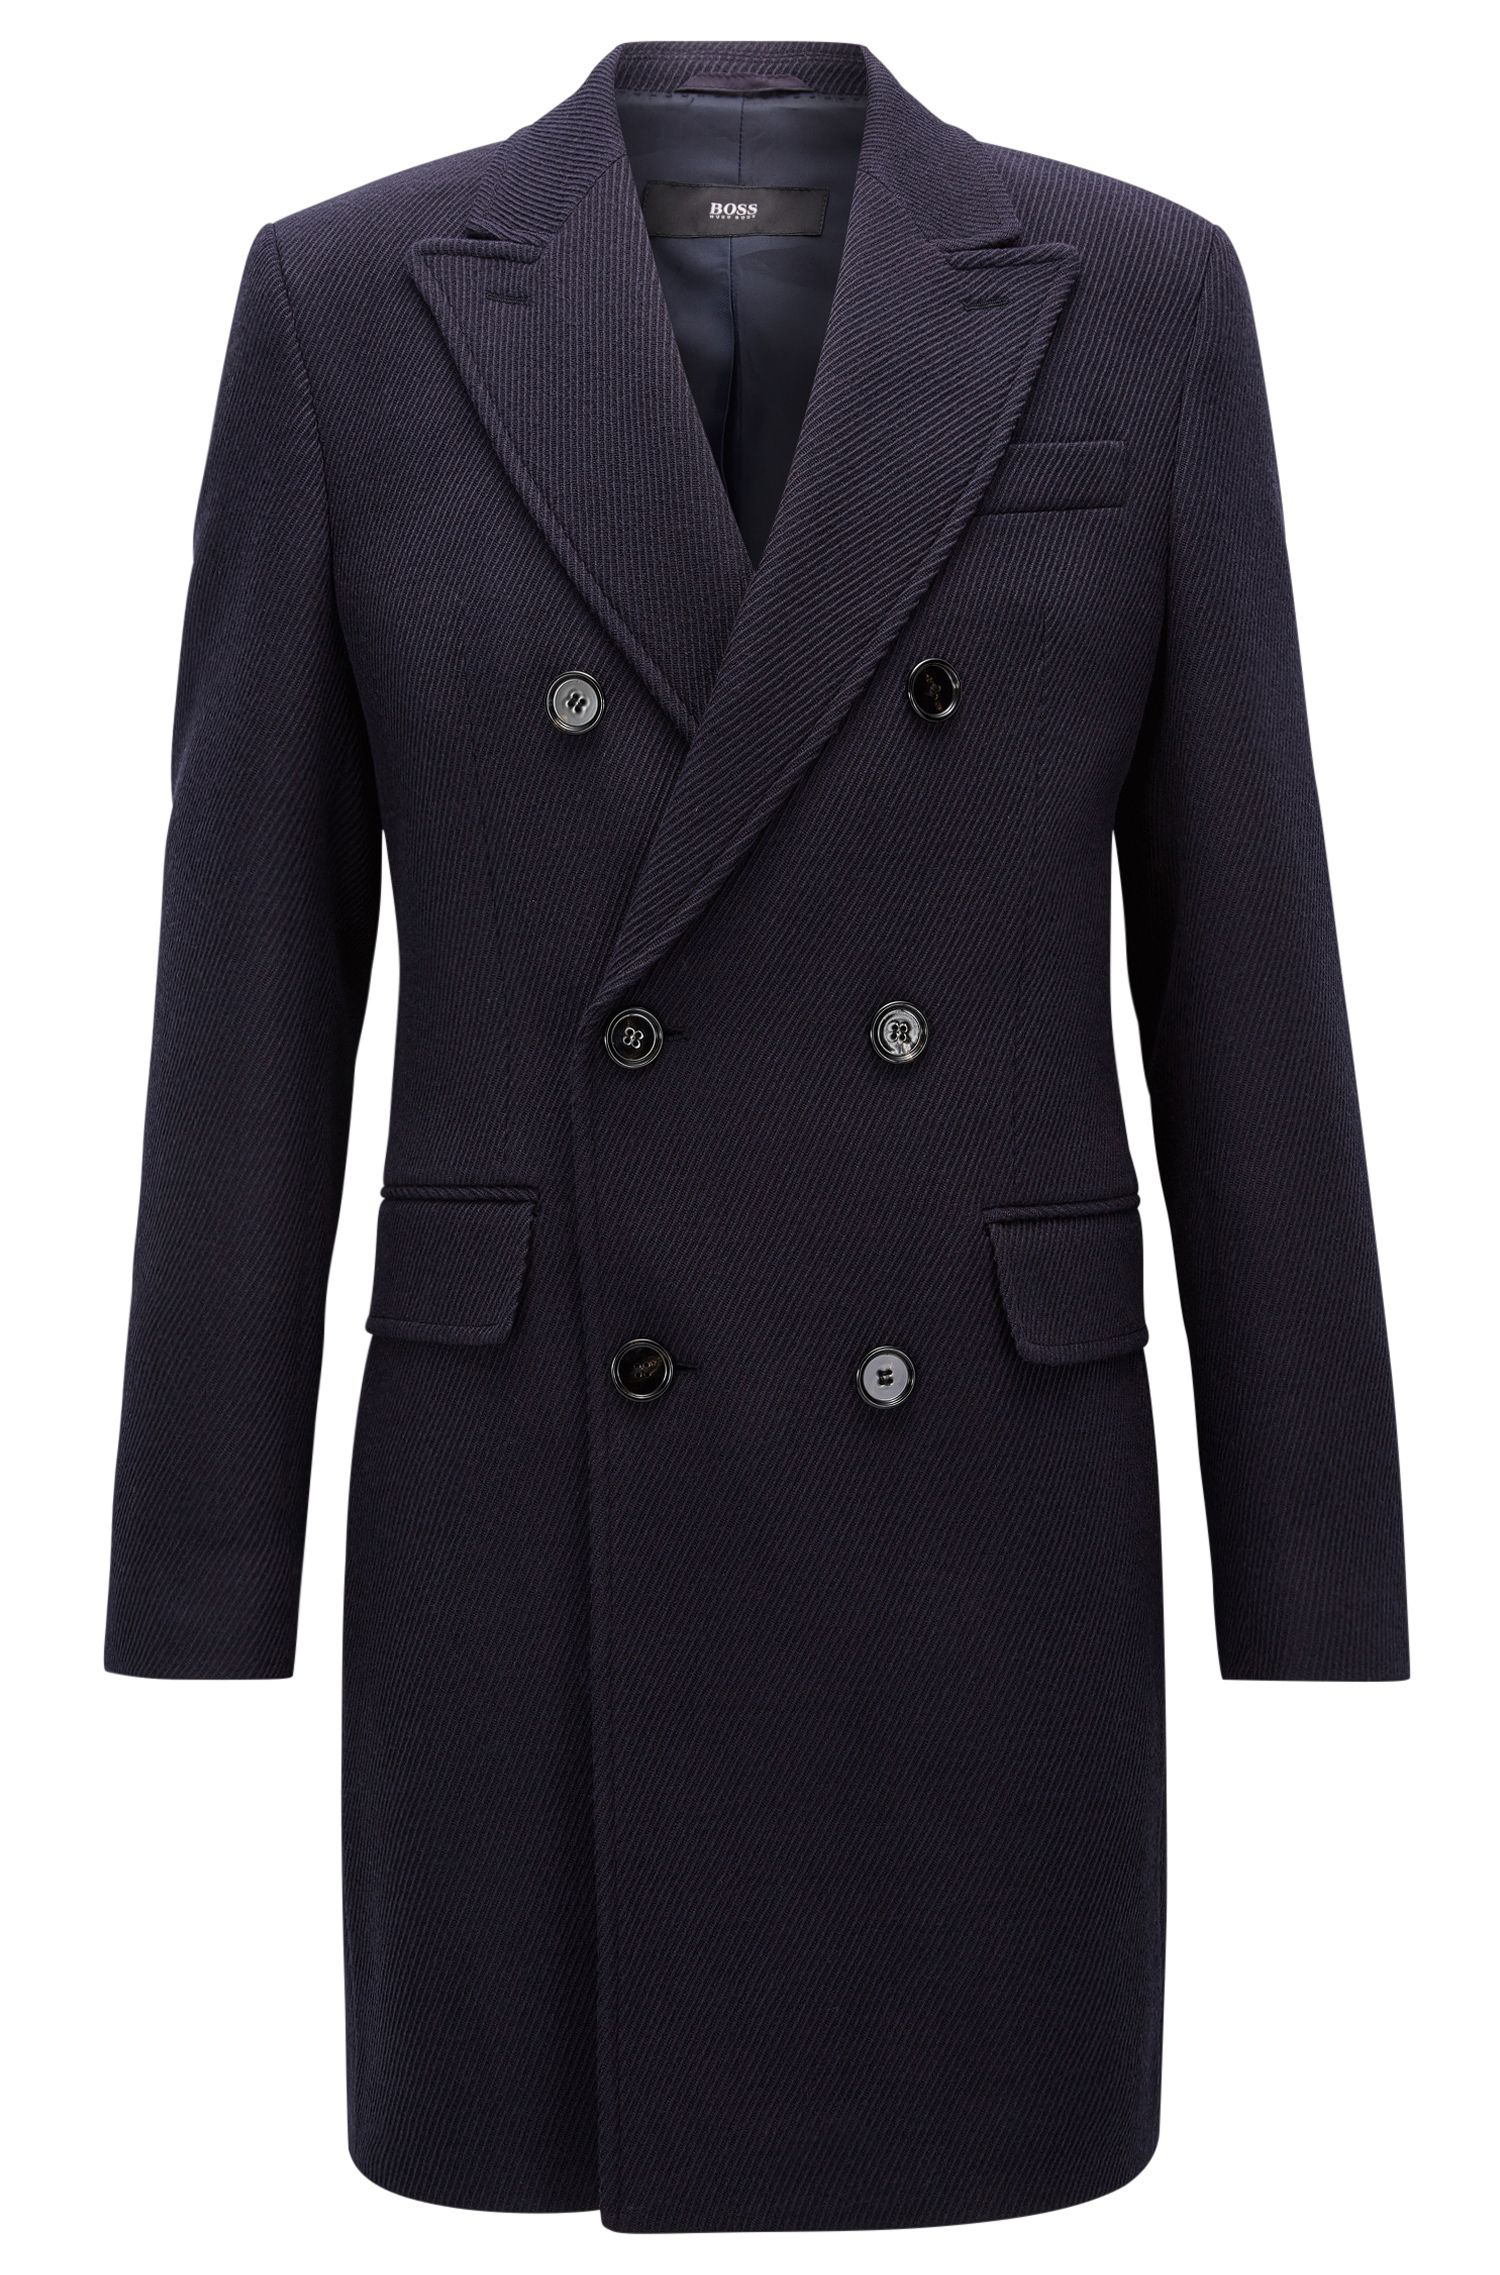 'Darvin' | Virgin Wool Twill Double-Breasted Overcoat